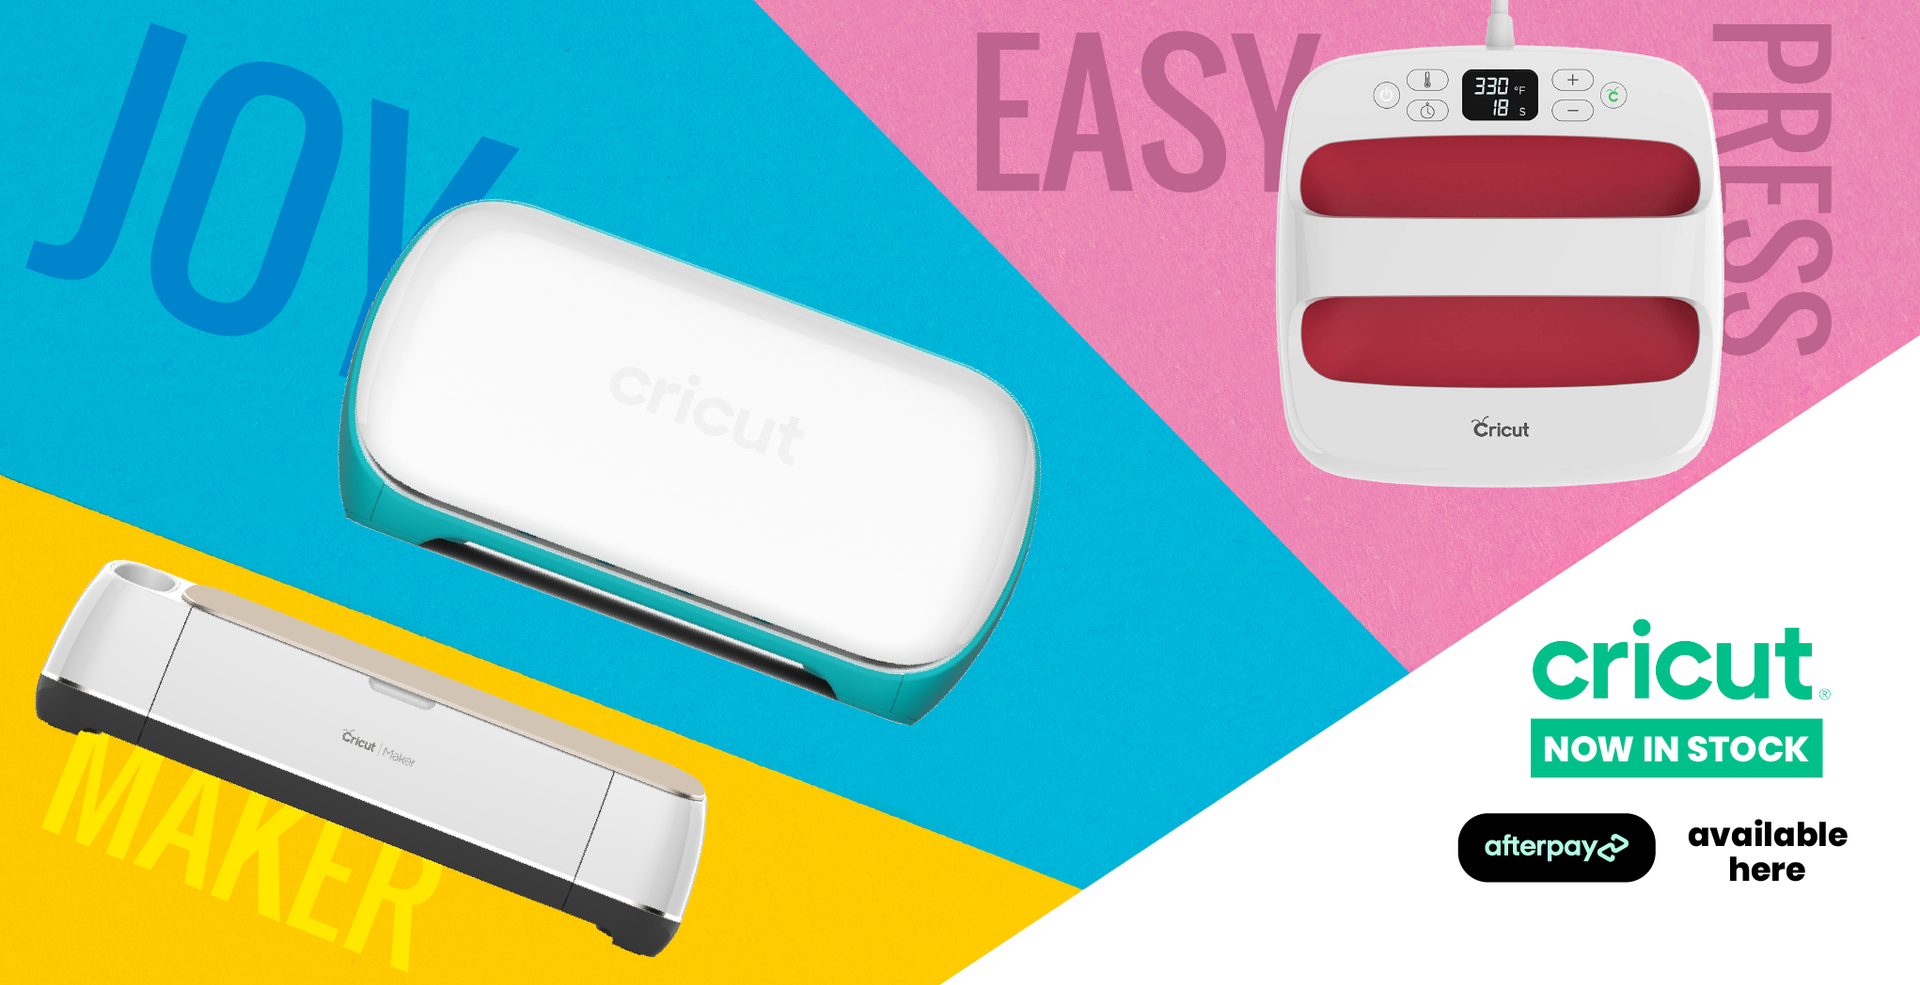 The Bestselling Cricut Machines are available at MediaForm with Afterpay!